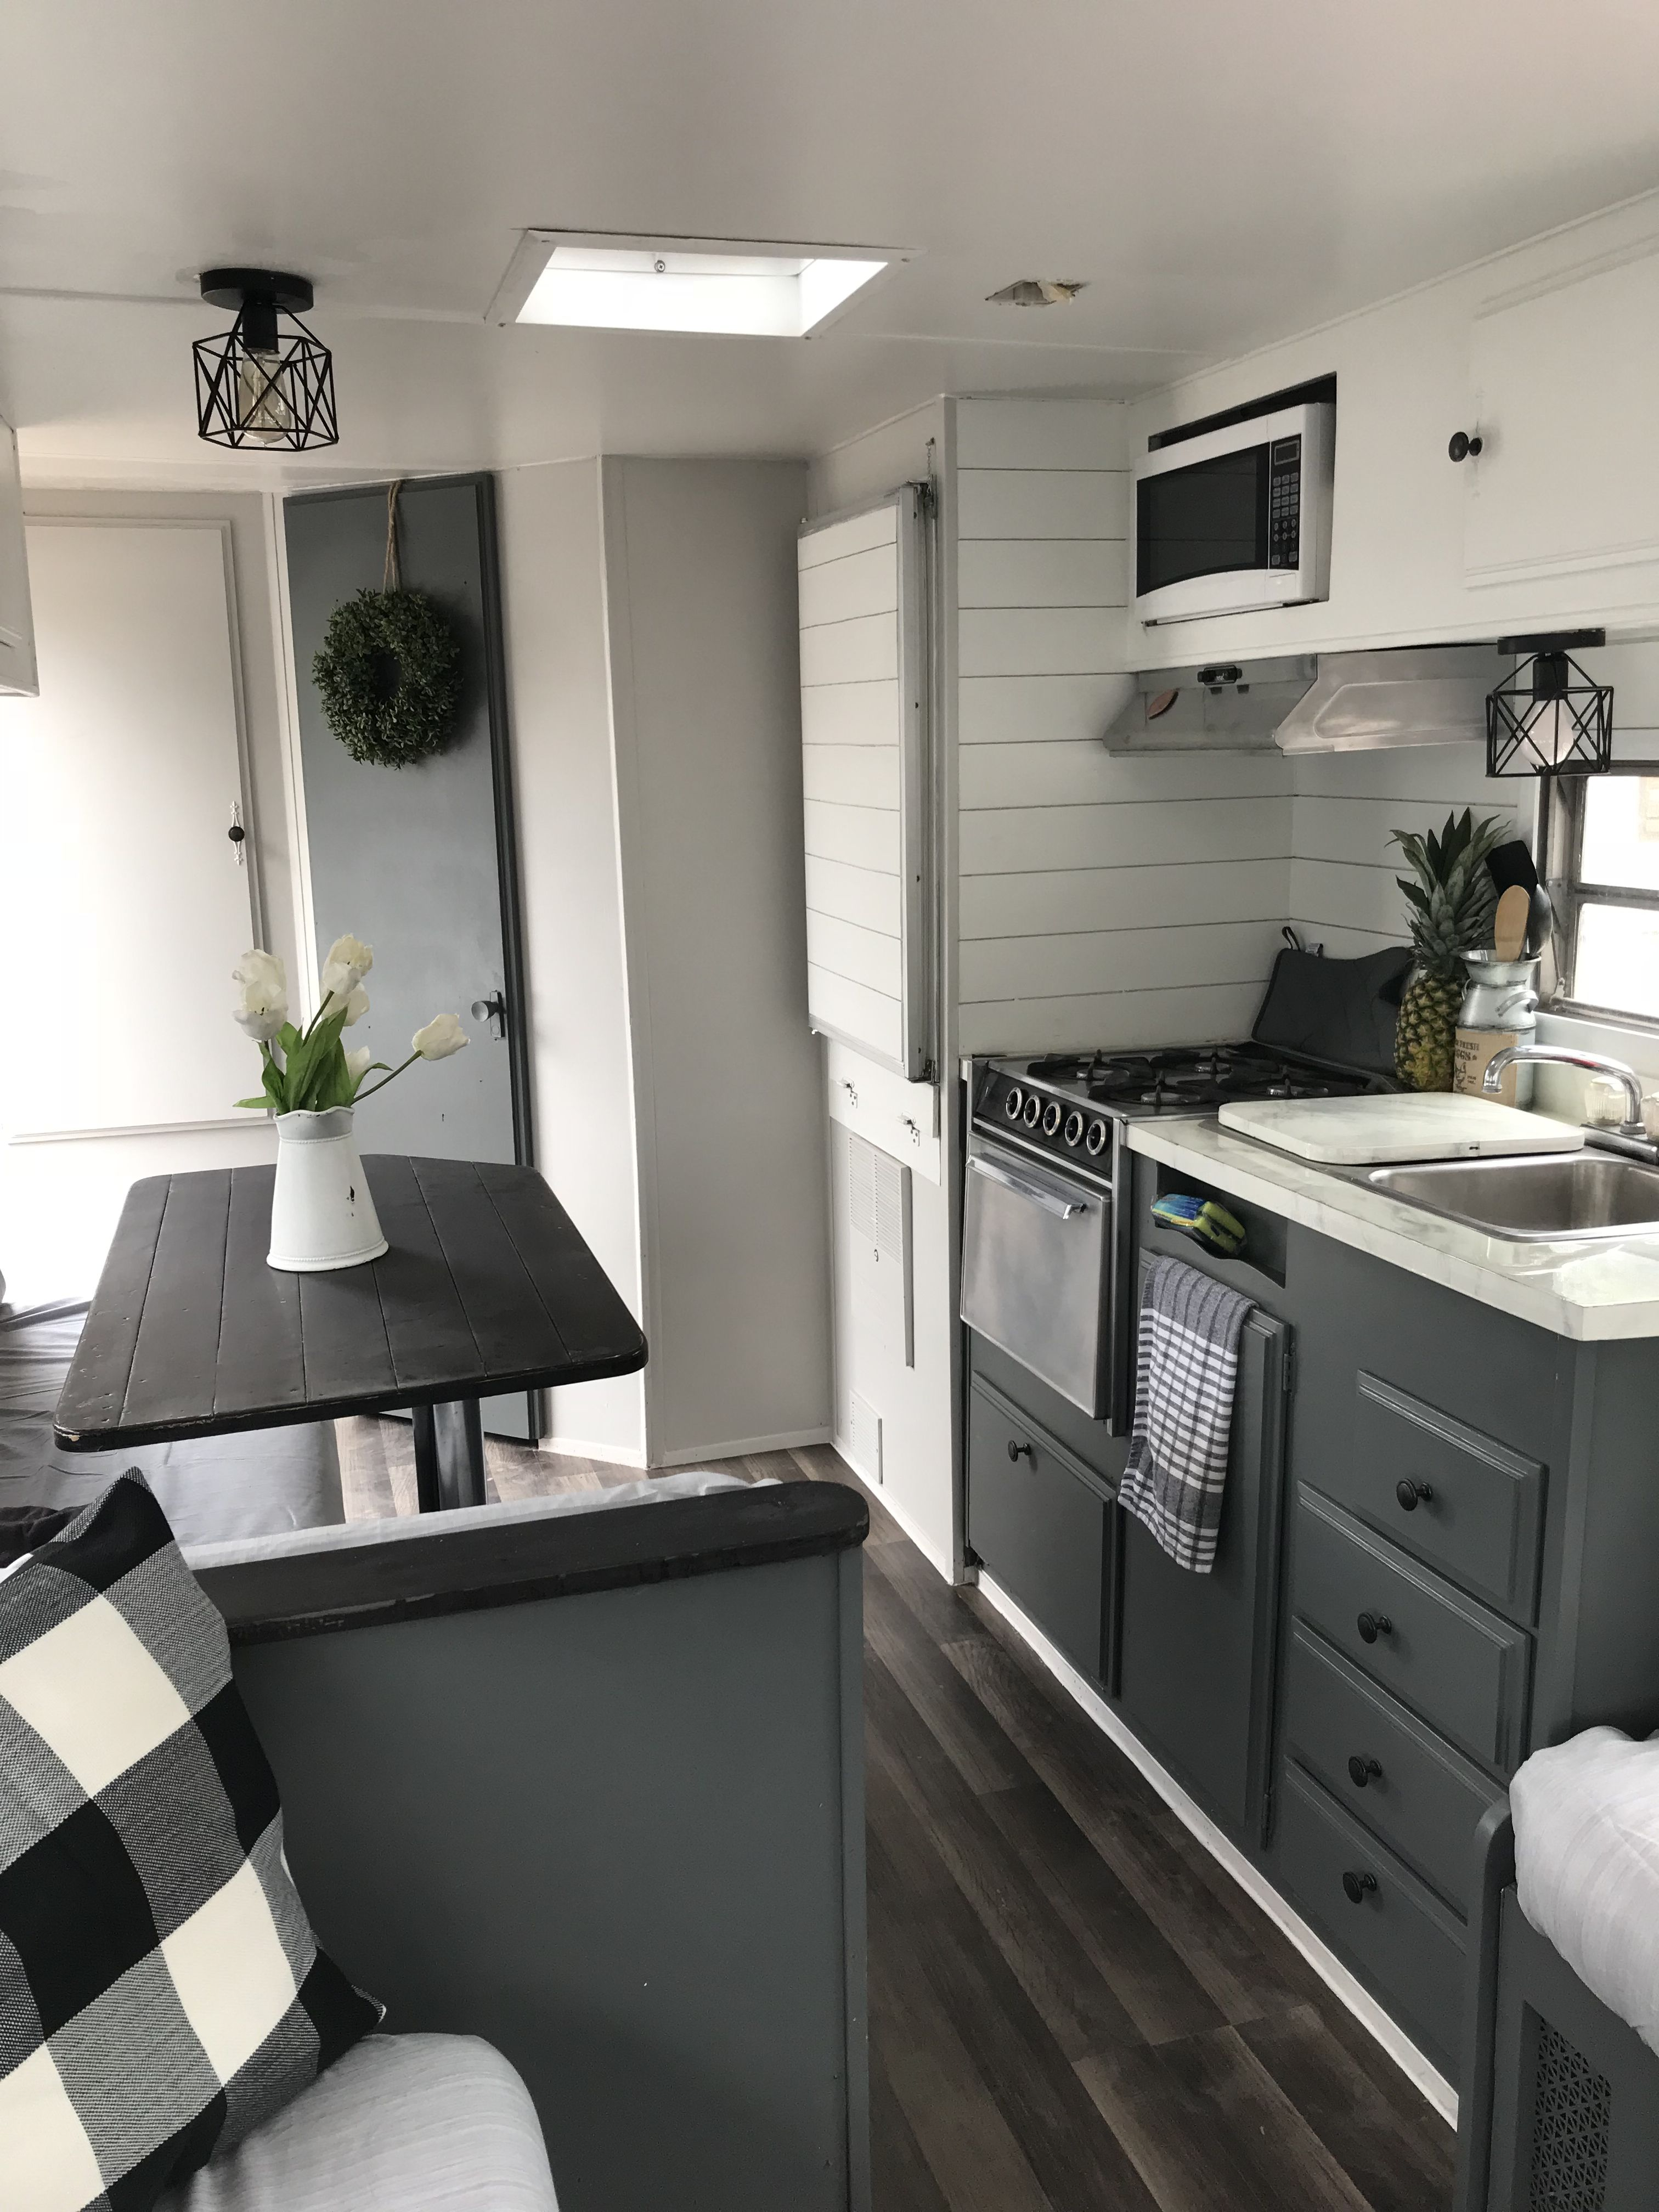 Pin By Iris Tremblay Laprise On Camper Remodel Camper Trailer Remodel Glamper Camper Remodeled Campers